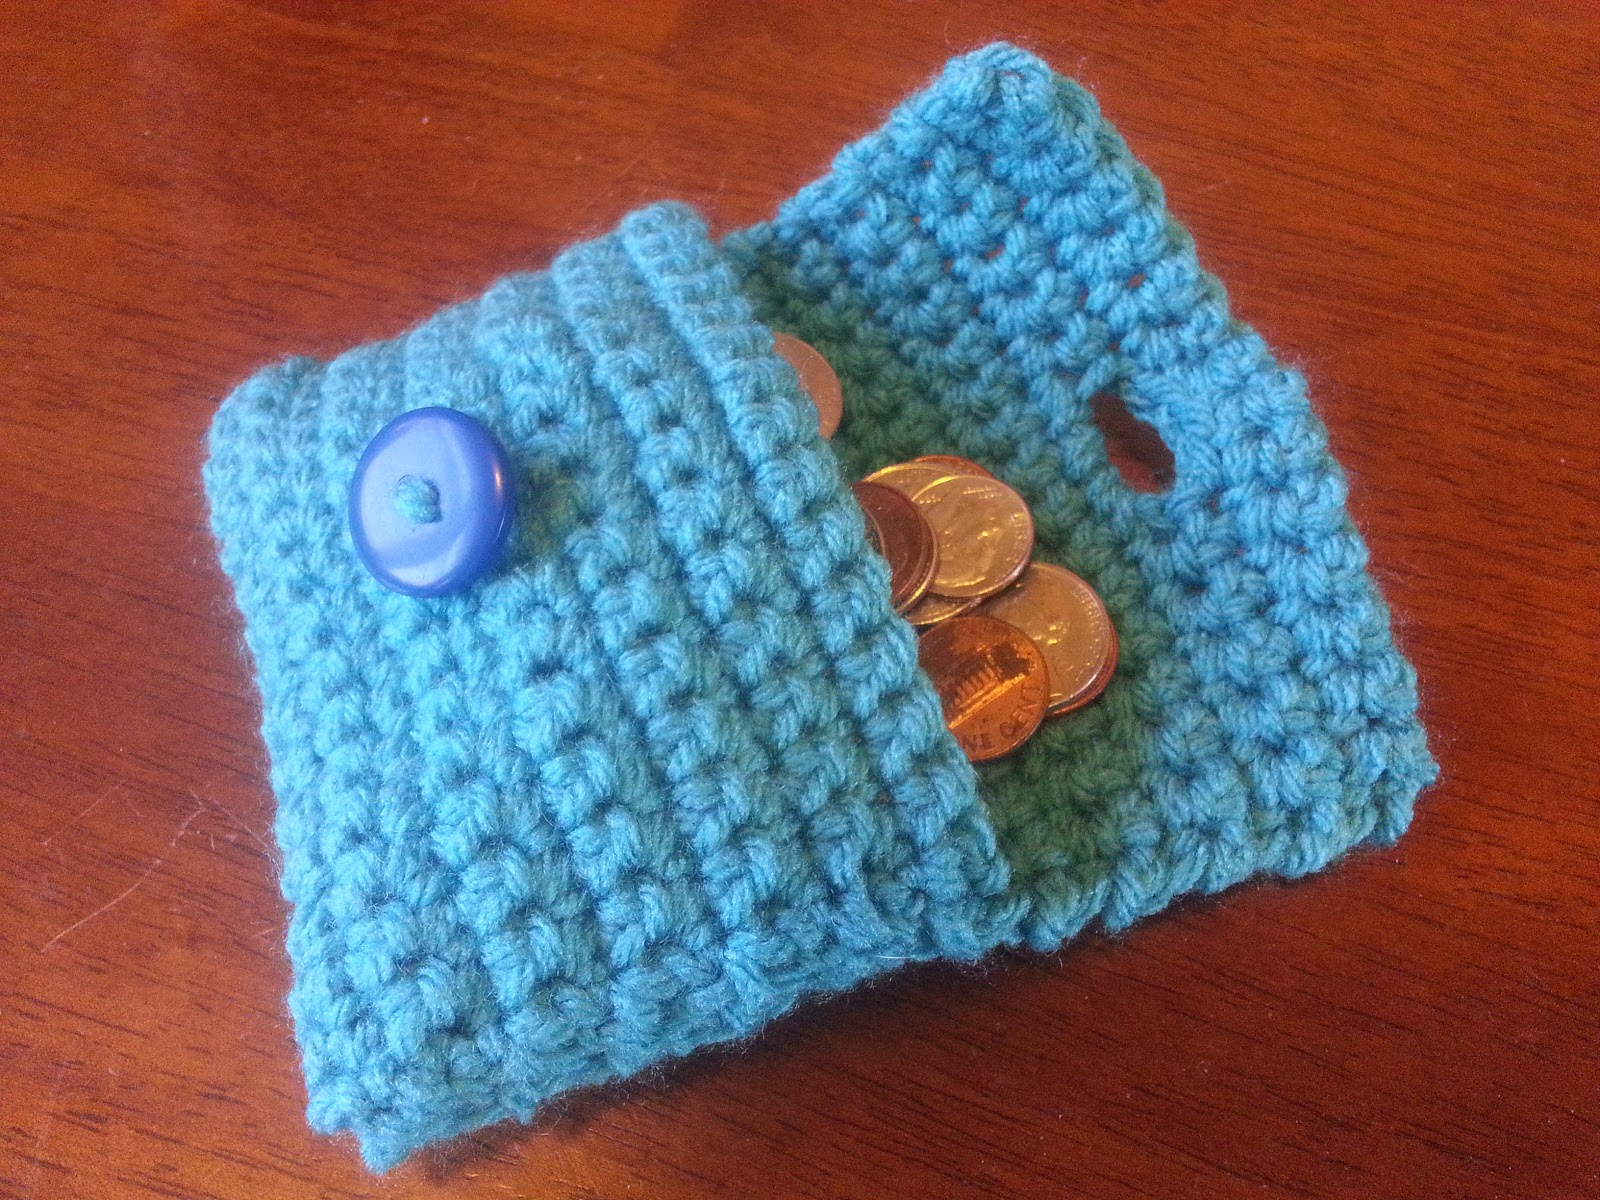 Coin Purse Crochet : Collection of Crochet Stitches: Pattern: Easy Coin Purse/Wallet